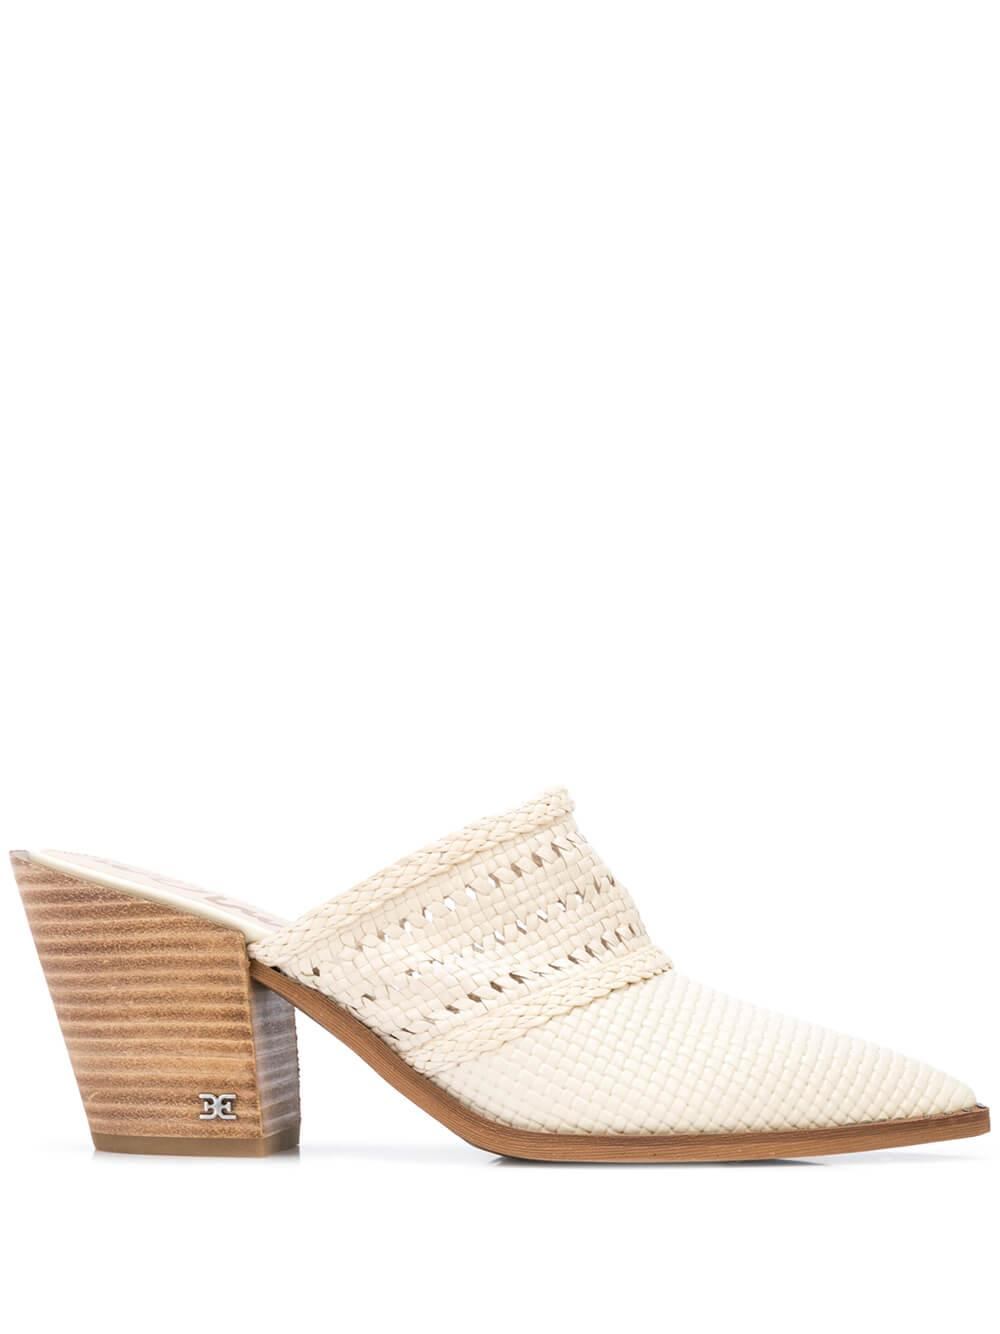 Woven Leather Pointed Toe Block Heel Mule